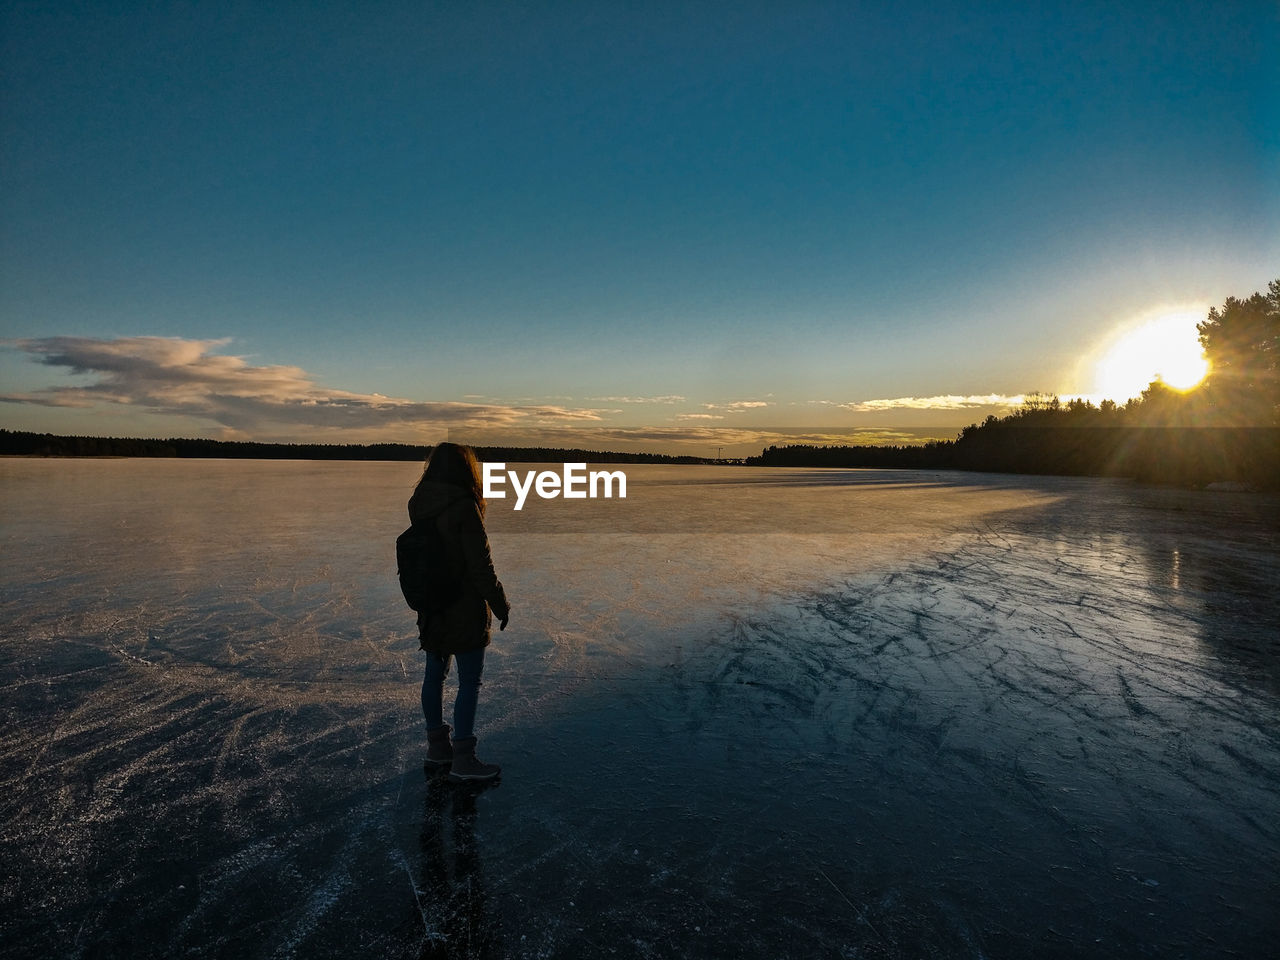 sky, real people, one person, full length, sunset, beauty in nature, rear view, water, lifestyles, nature, leisure activity, scenics - nature, tranquility, tranquil scene, standing, land, non-urban scene, silhouette, outdoors